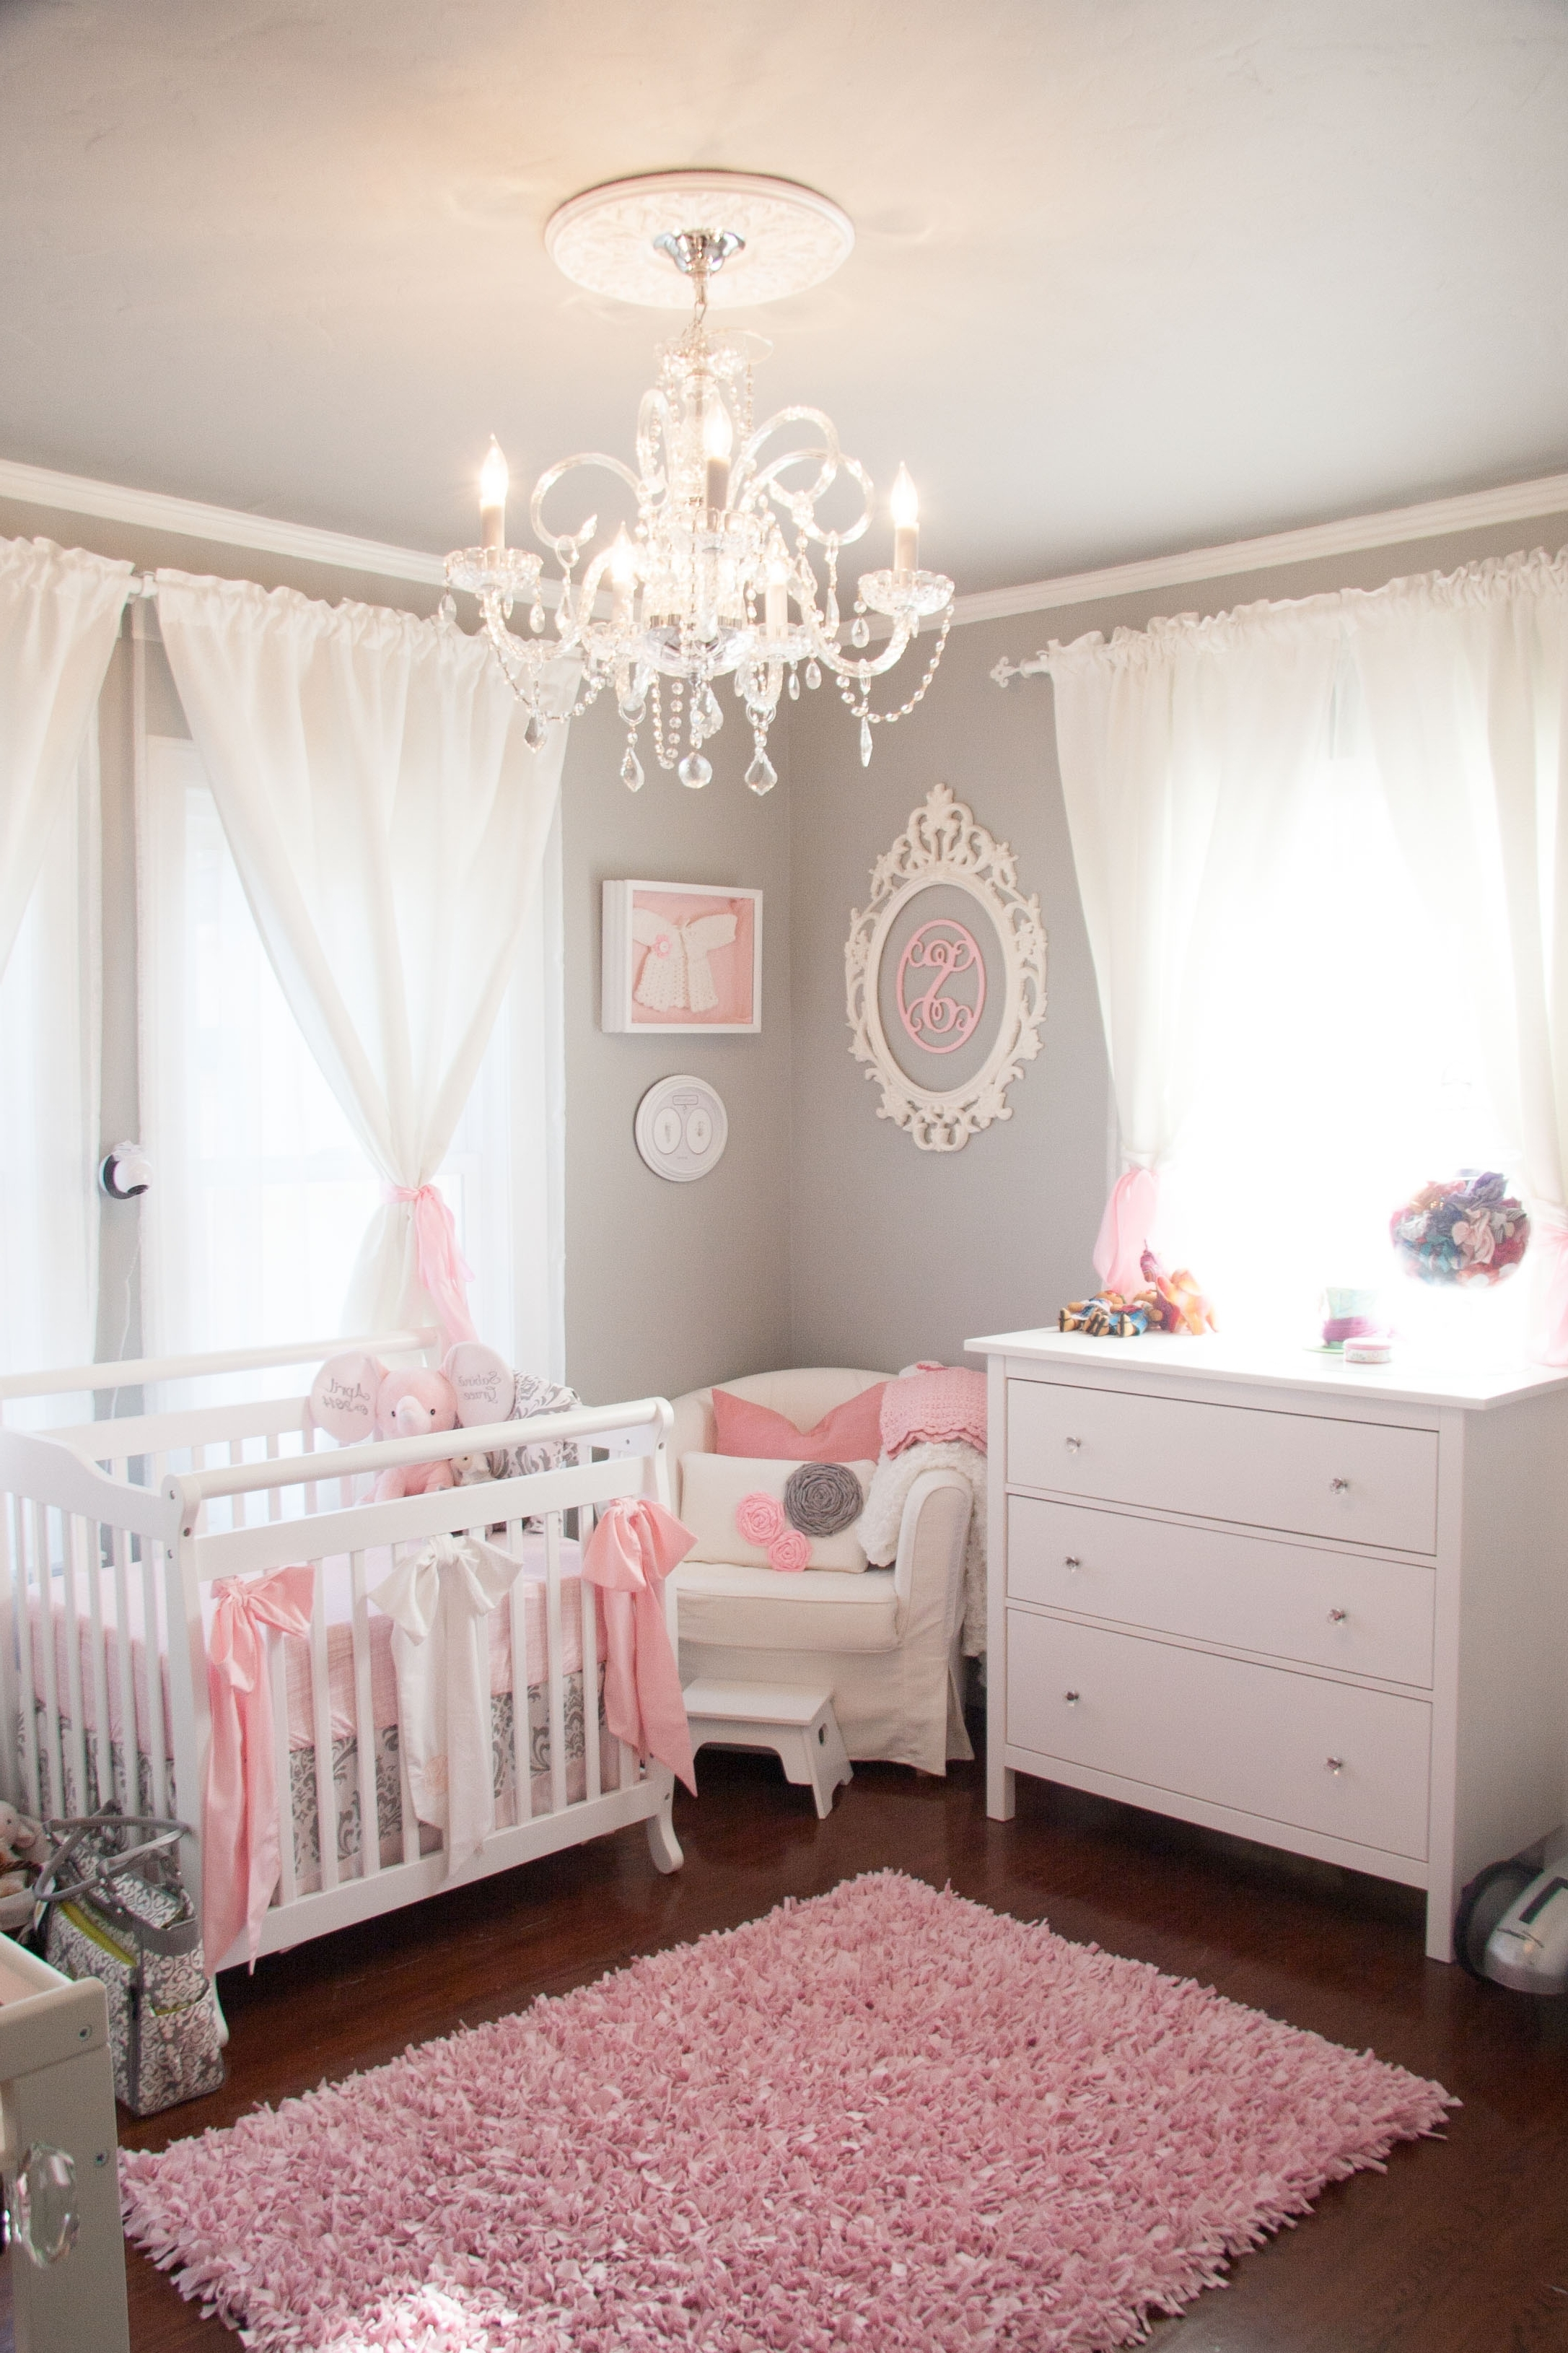 Favorite Tiny Budget In A Tiny Room For A Tiny Princess – Project Nursery Intended For Chandeliers For Girl Nursery (View 6 of 15)